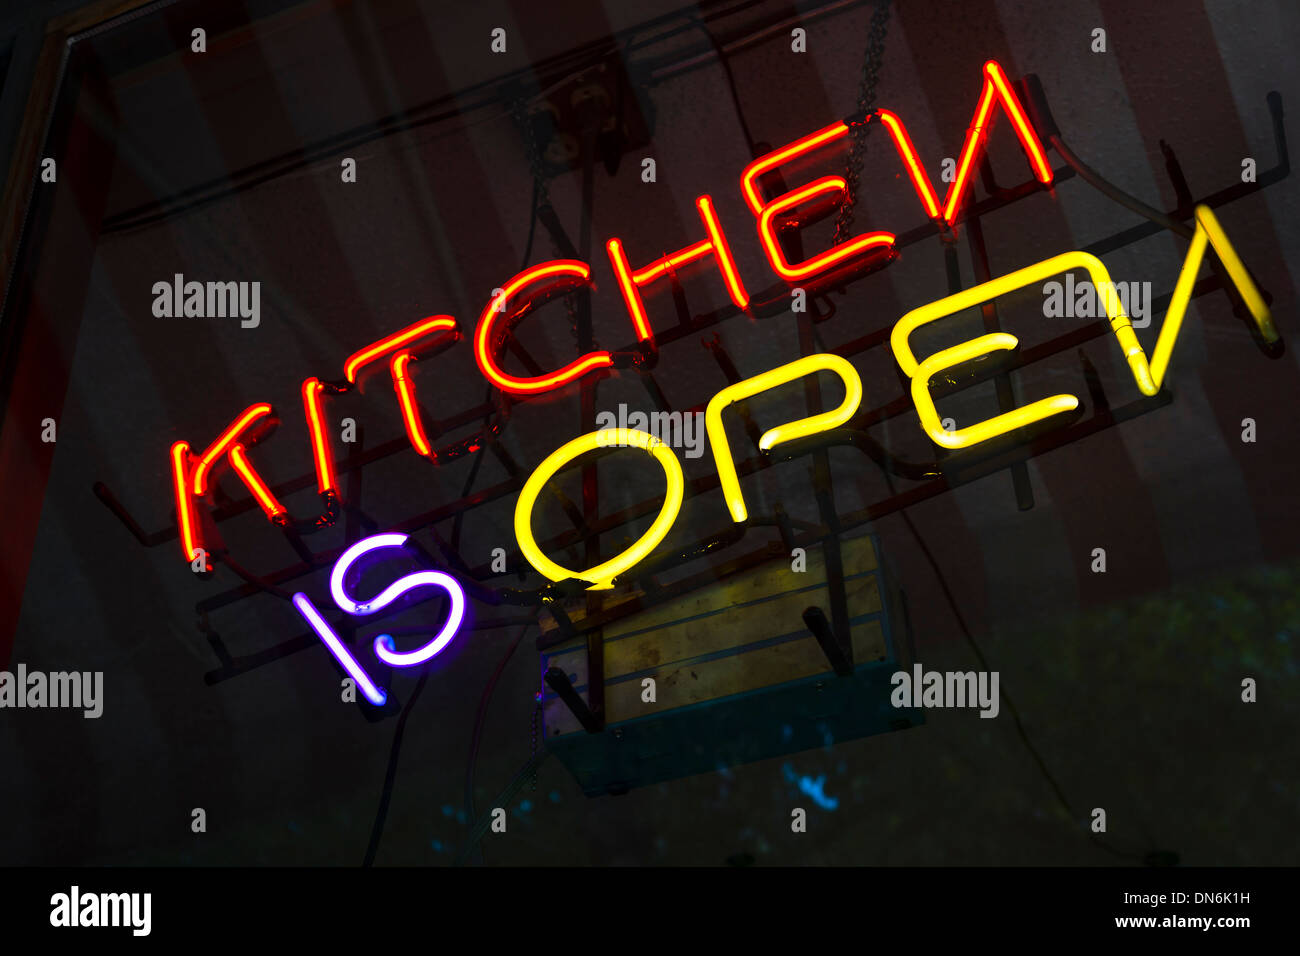 Neon Kitchen High Resolution Stock Photography And Images Alamy